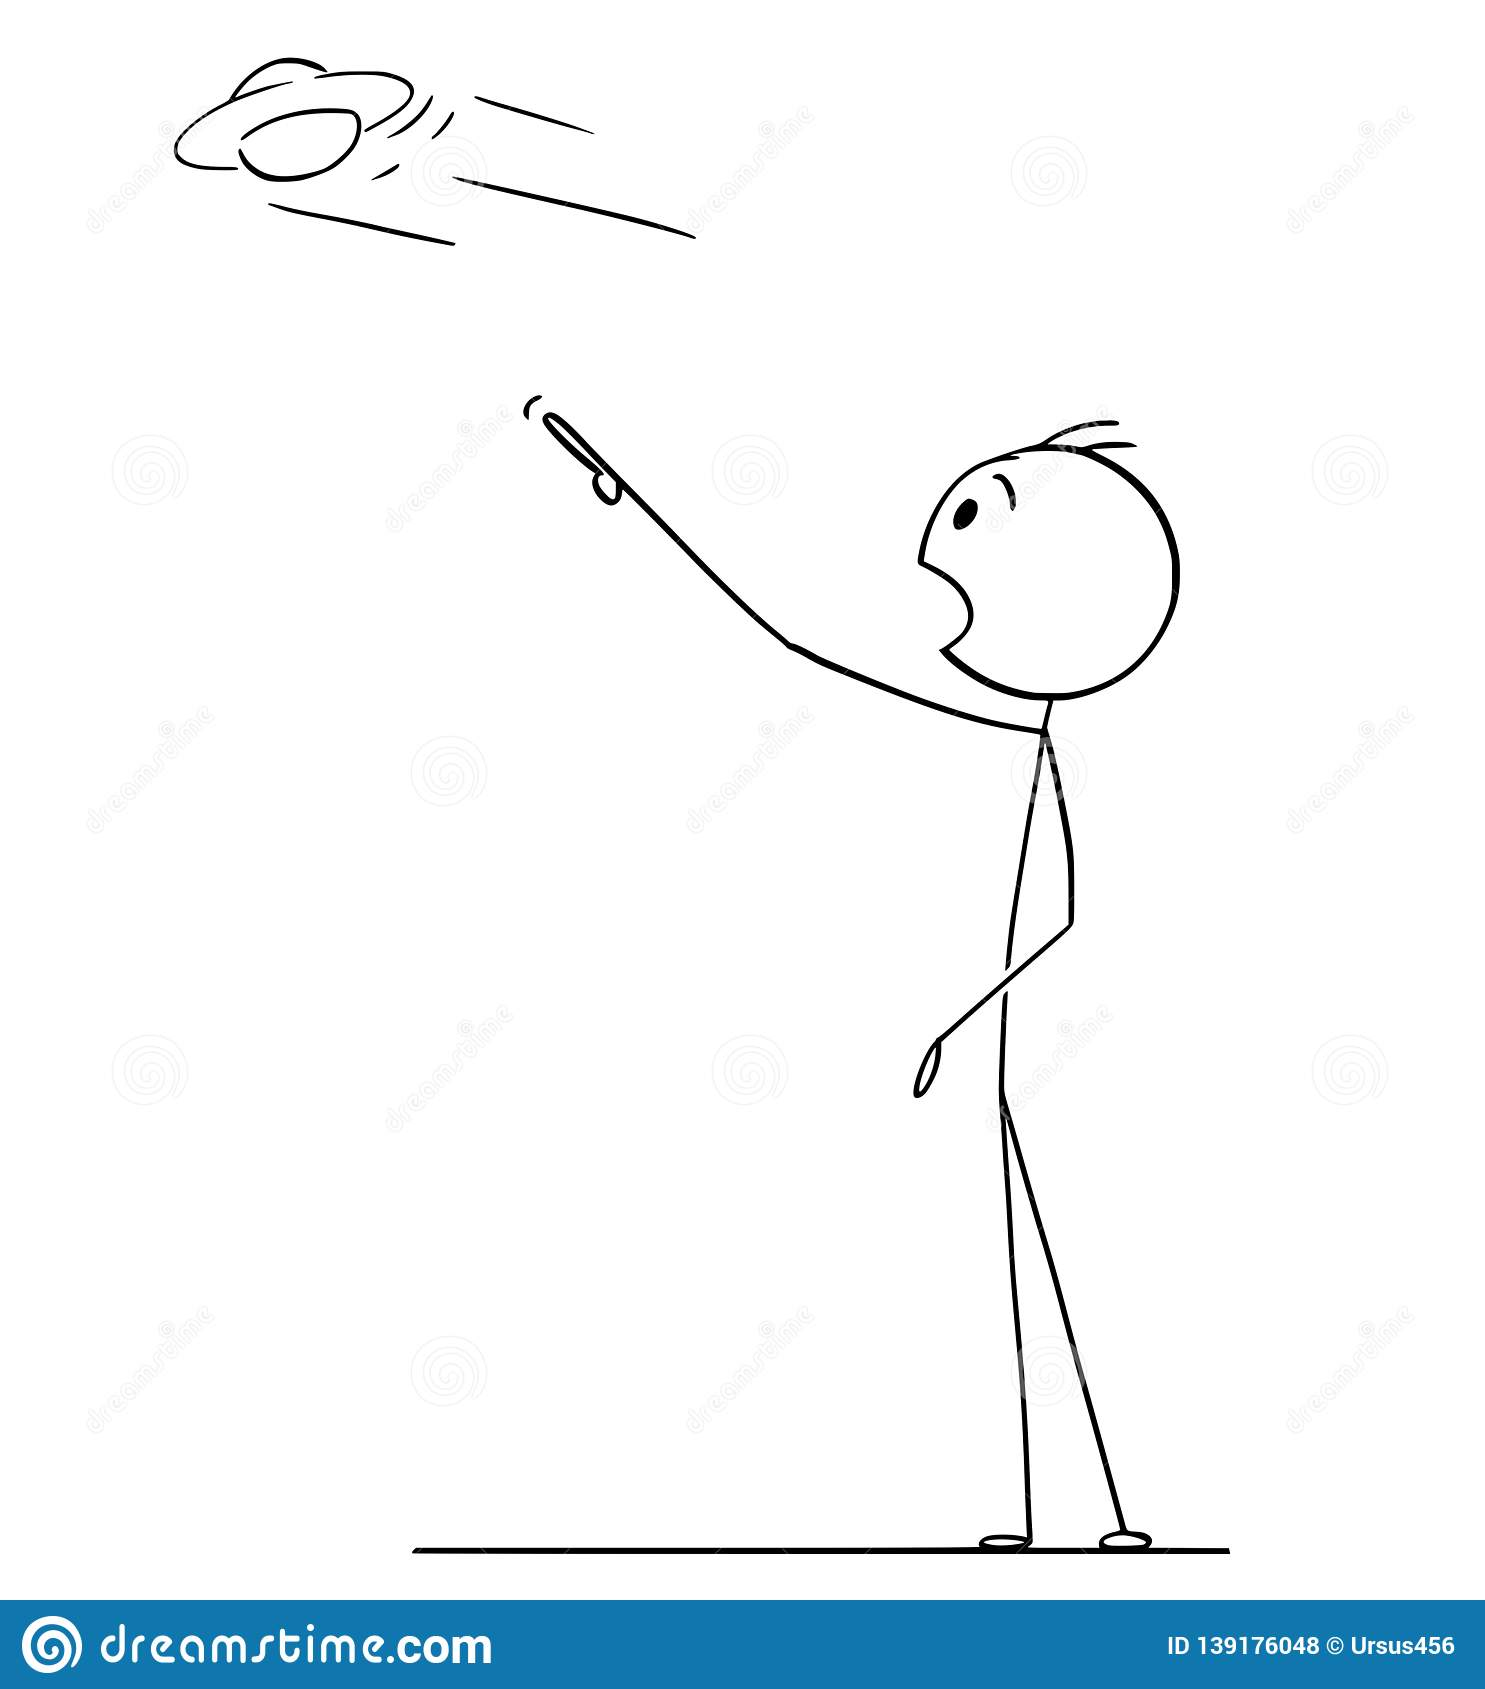 Cartoon Drawing Of Man Watching Ufo Or Flying Saucer Stock Vector Illustration Of Figure Design 139176048